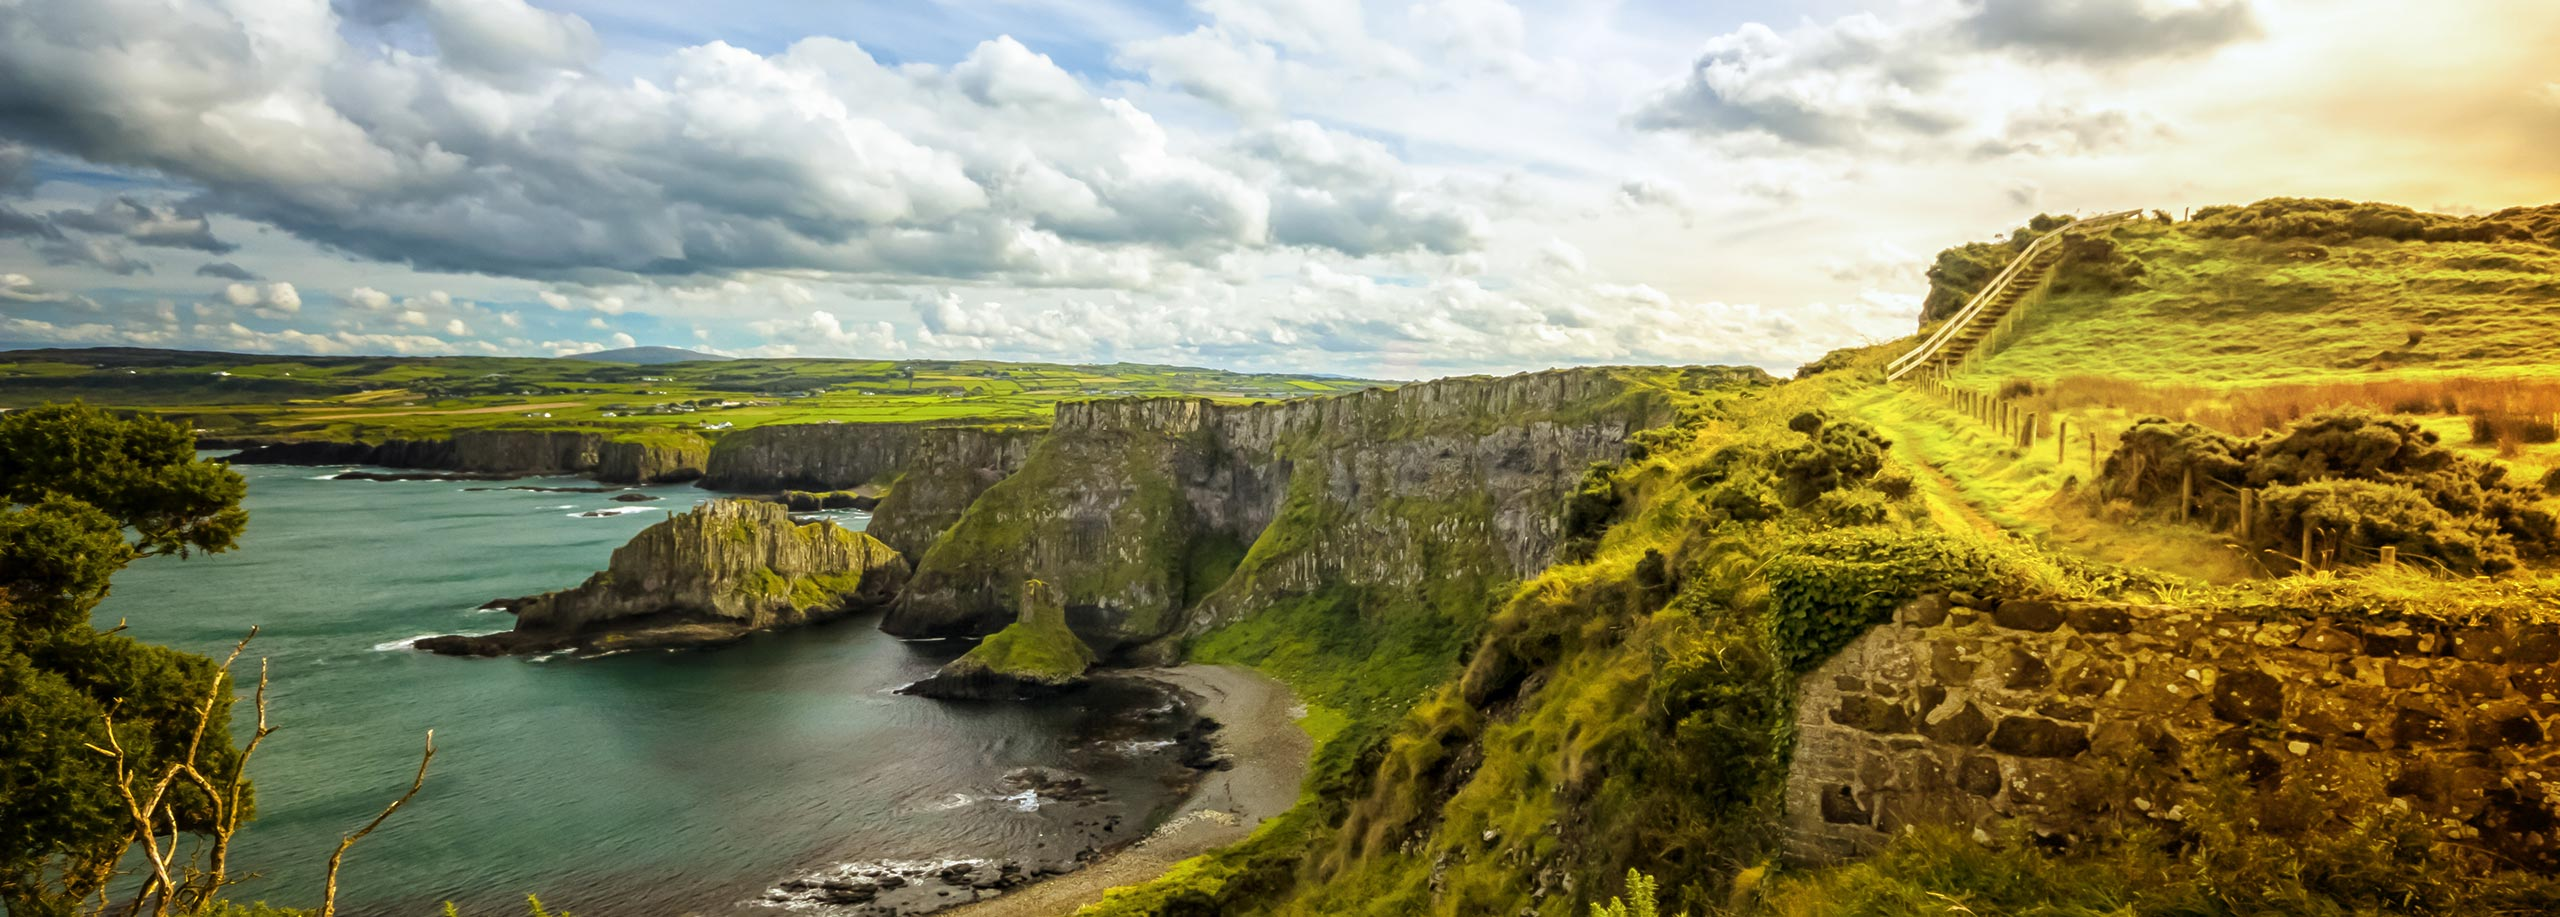 car hire rentals ireland country side